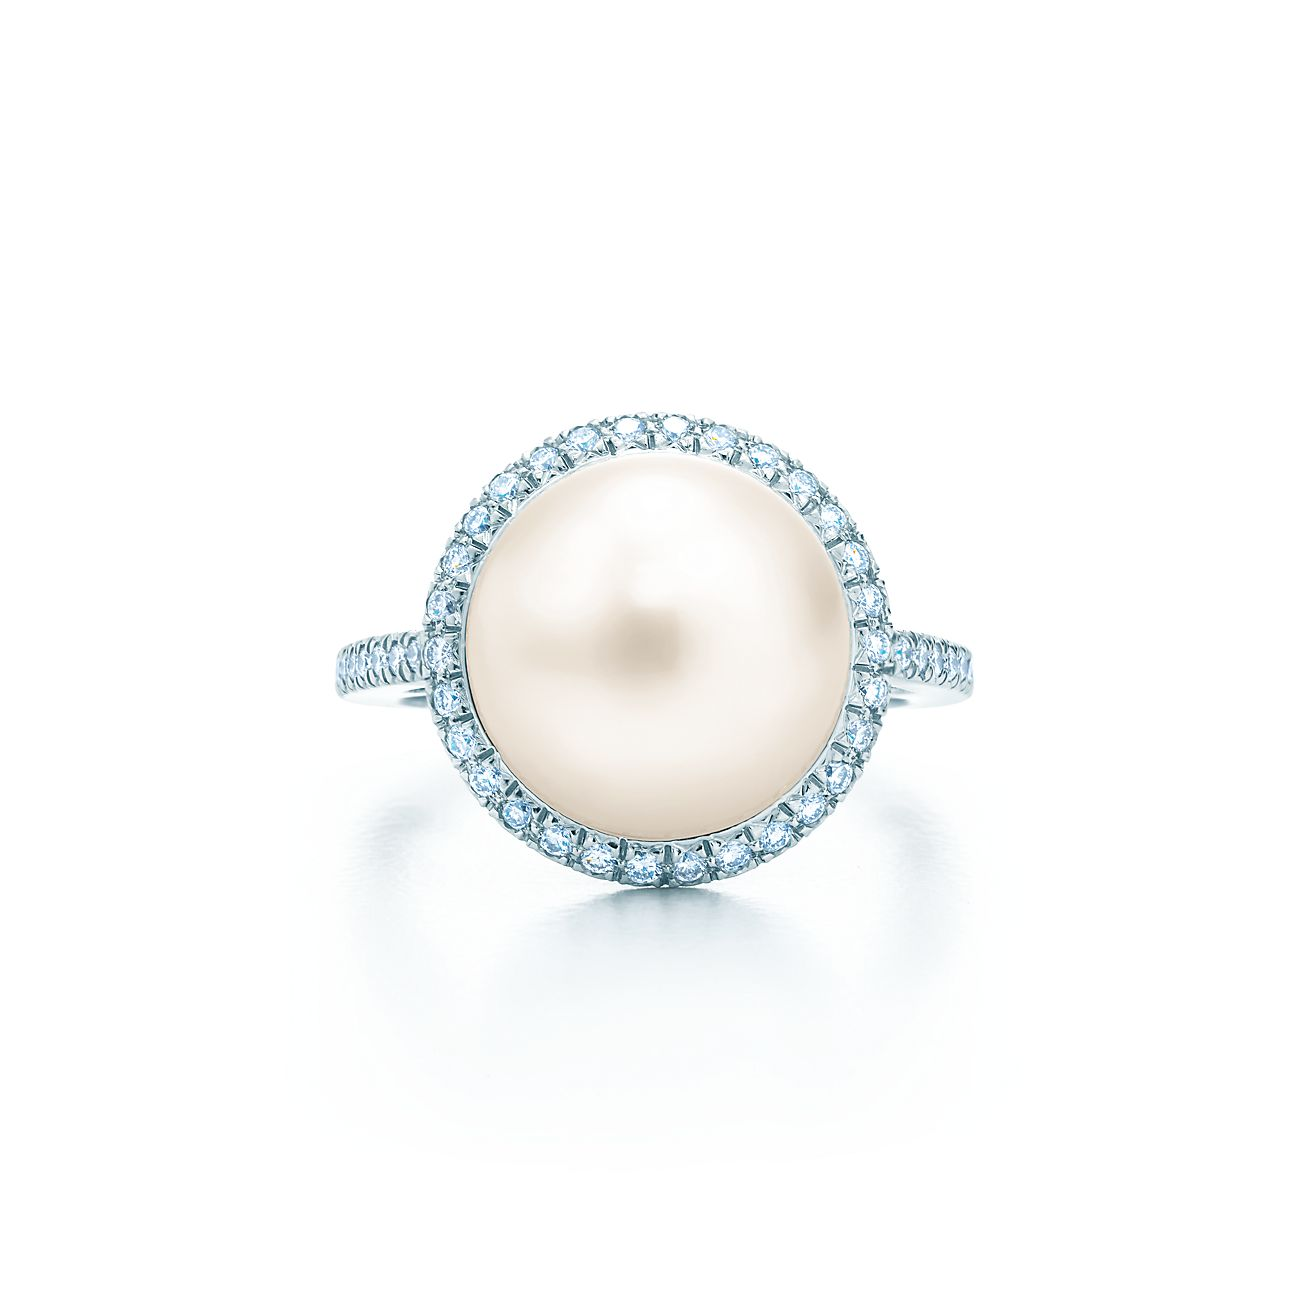 look for pearl band so pearls pave ring via oliveavejewelry beautiful a modern engagement rings romantic white instagram oh gold